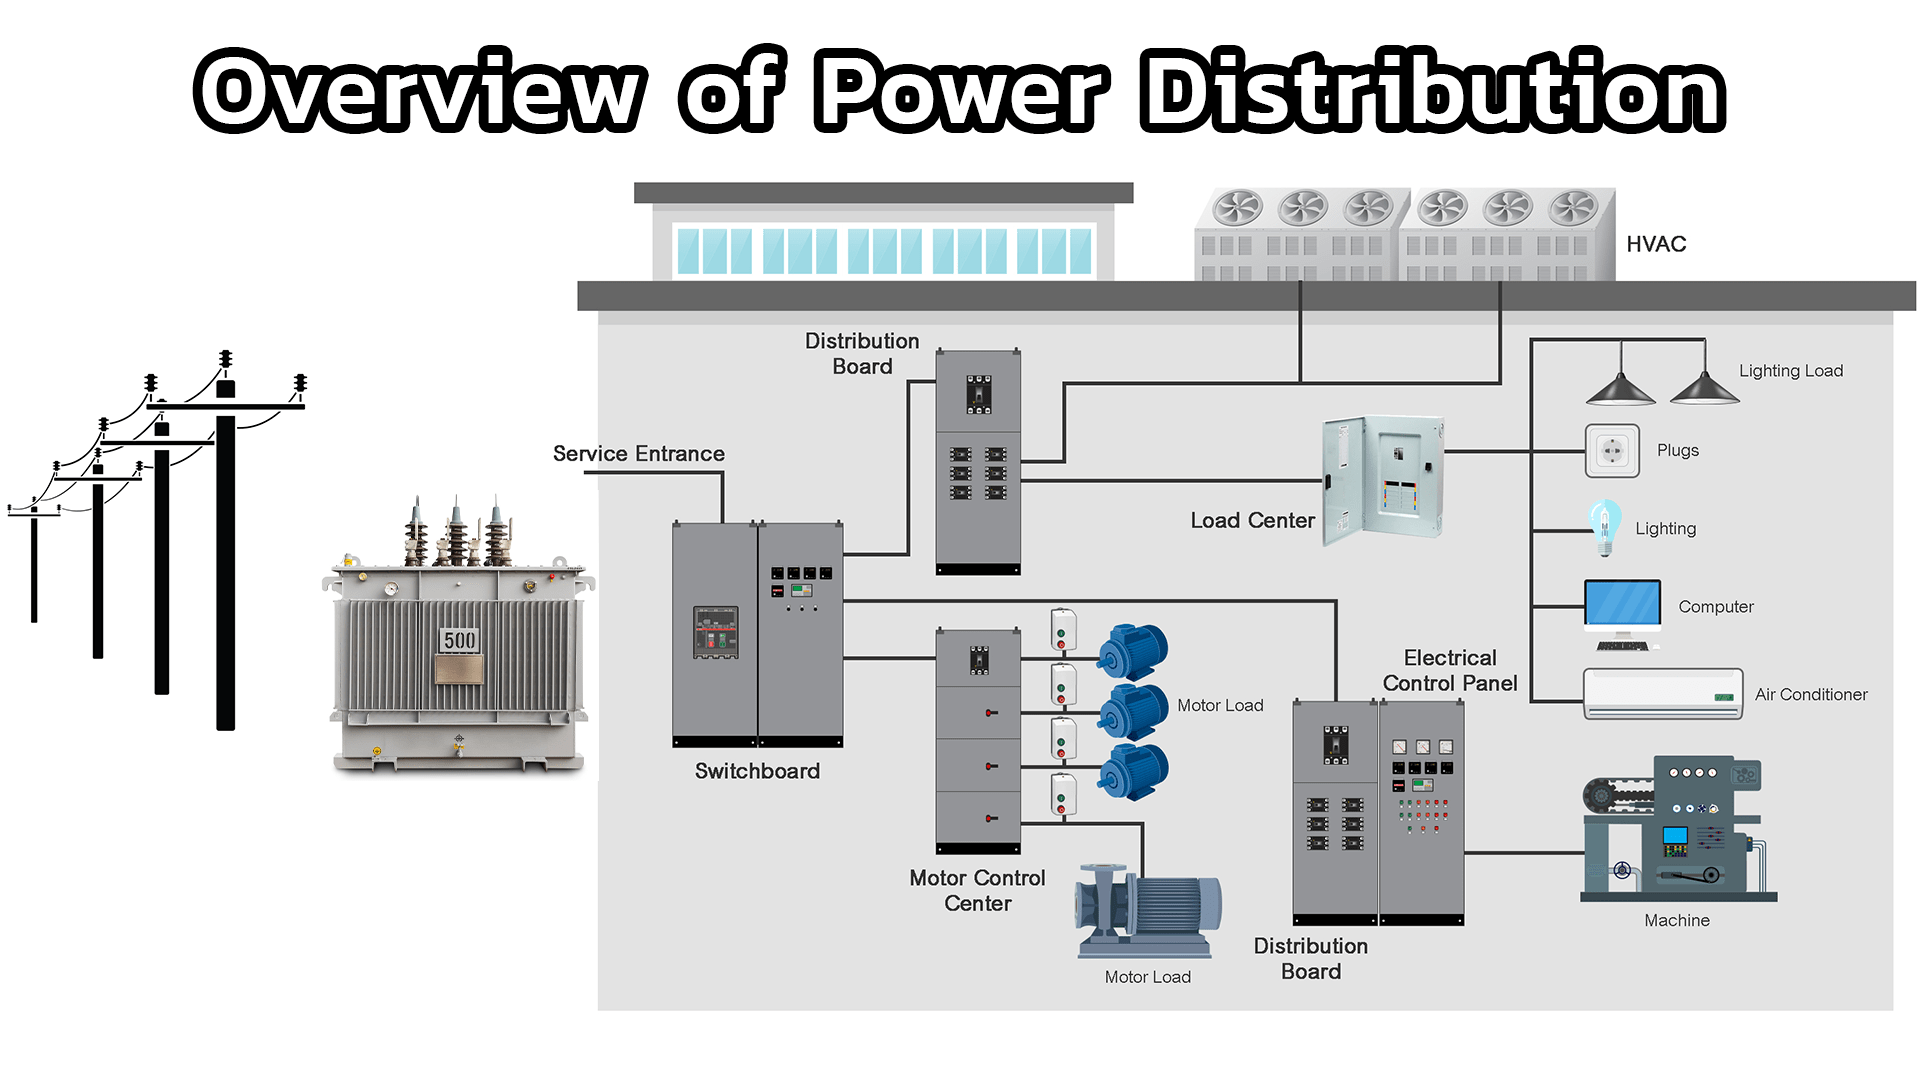 hight resolution of in this chapter we will give an overview of the power distribution system starting from the medium voltage transmission line through the transformers into